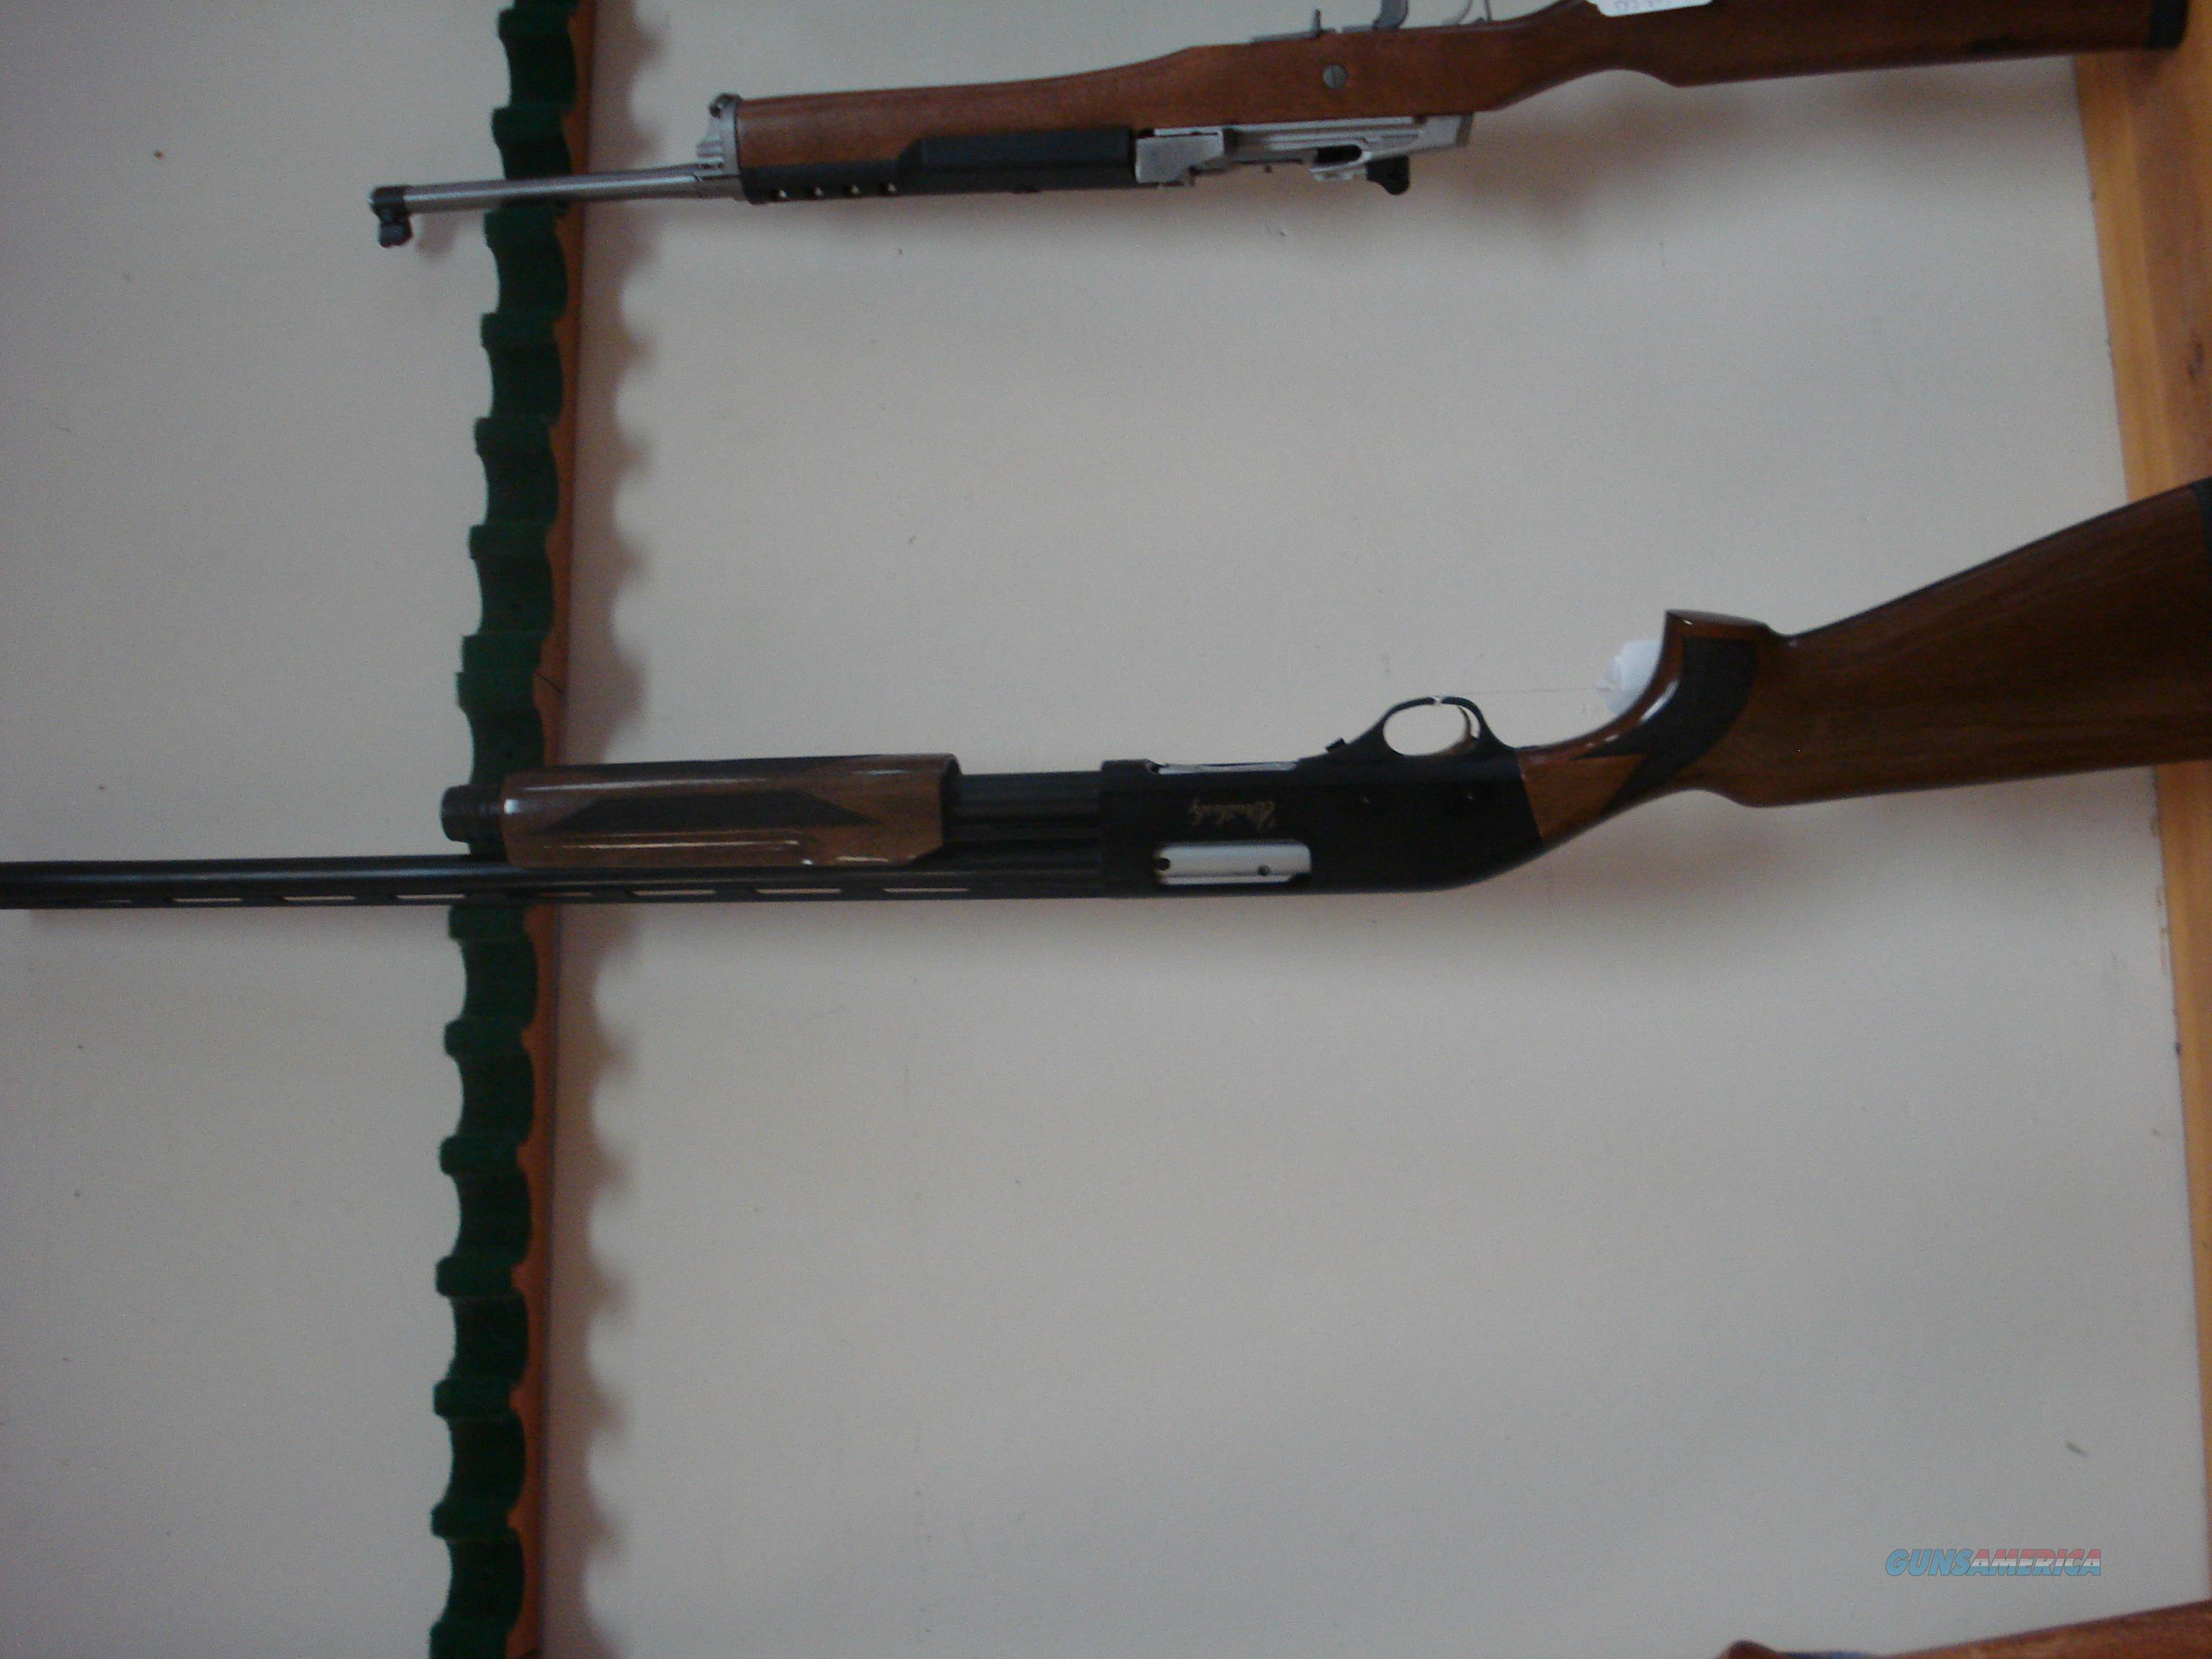 Weatherby  12g  Guns > Shotguns > Weatherby Shotguns > Pump